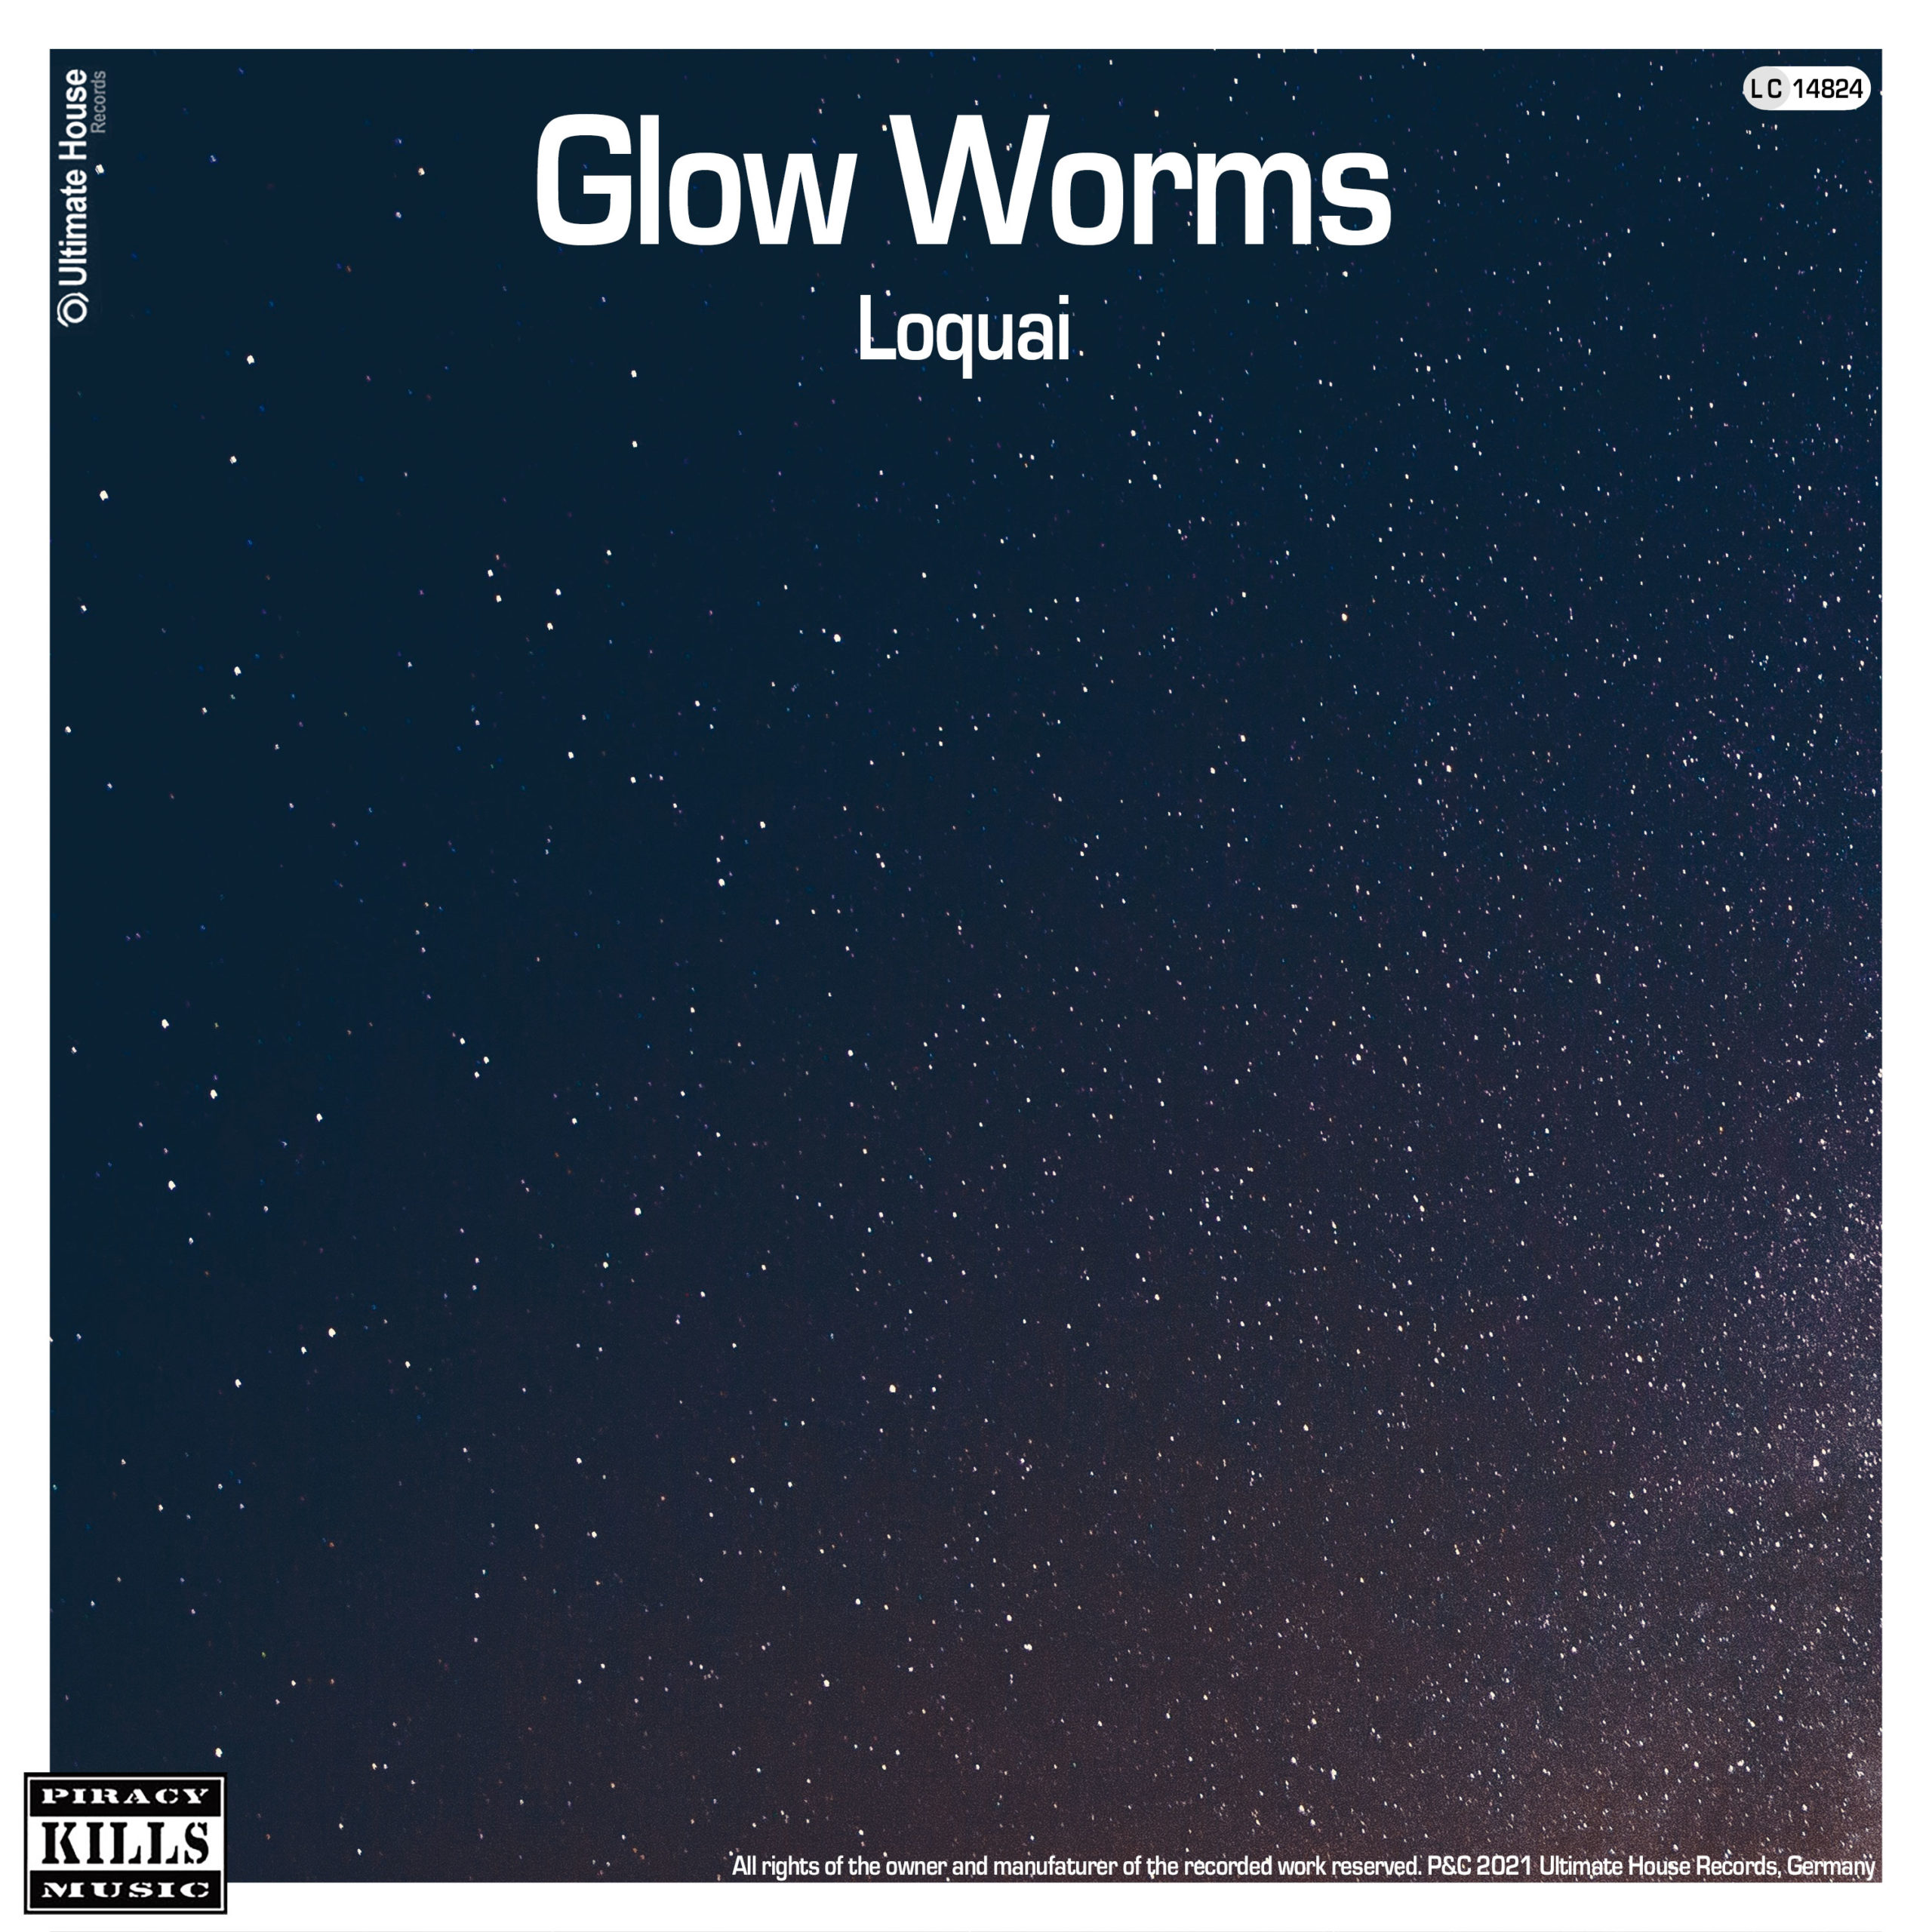 https://www.ultimate-house-records.com/wp-content/uploads/2021/07/151-Glow_Worms-Cover_3000px_web-scaled.jpg